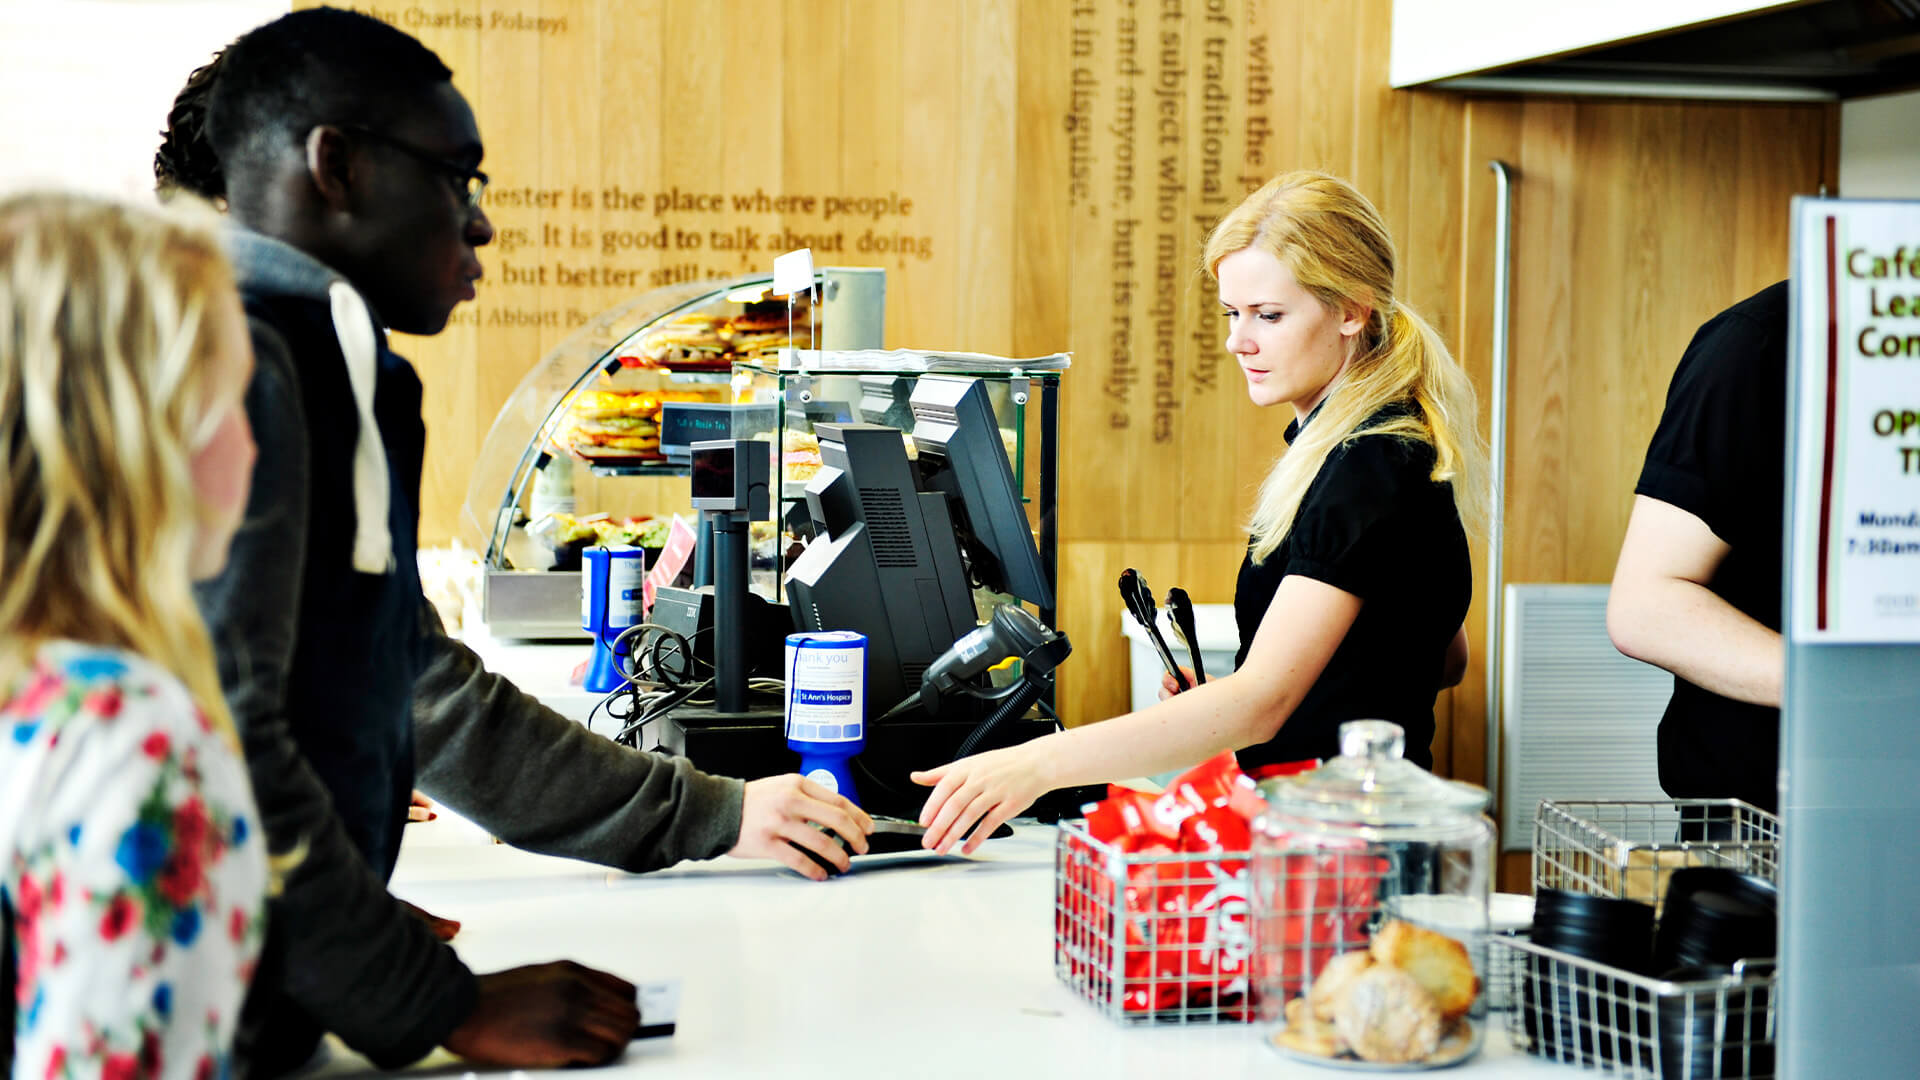 The Whitworth Café is an on-campus cafe at The University of Manchester